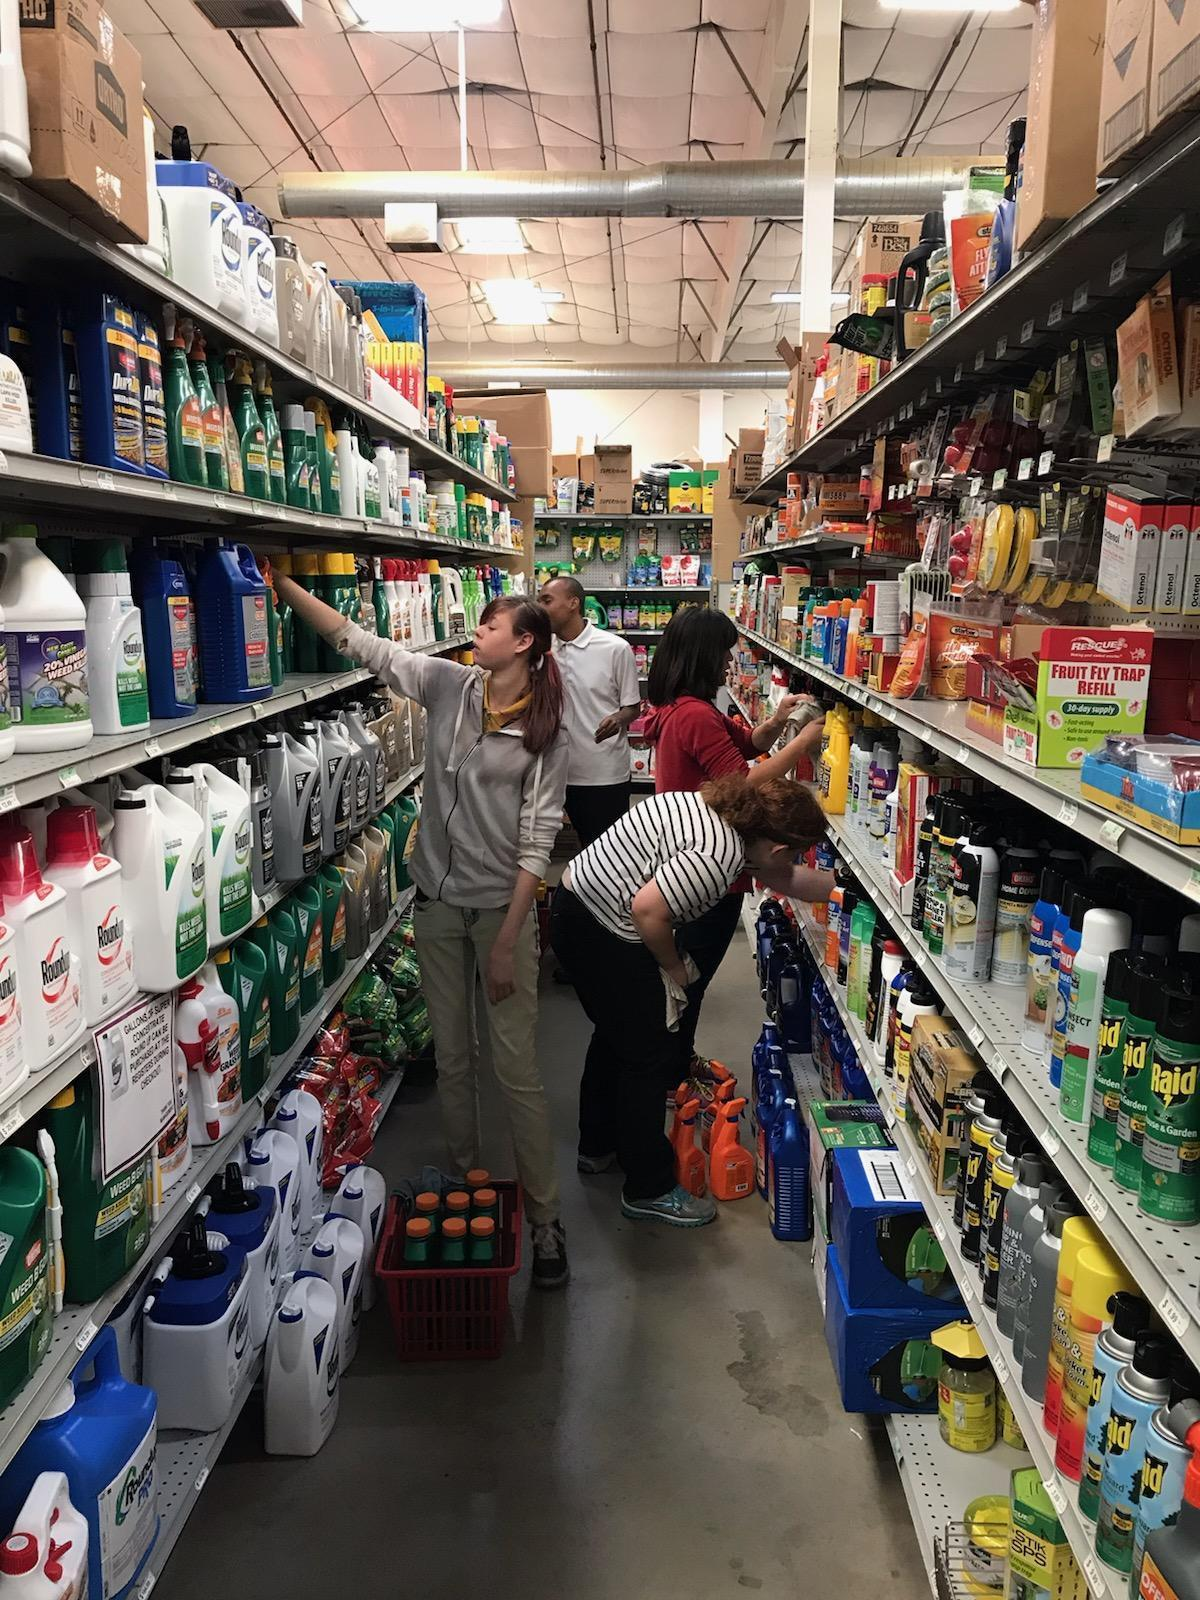 Students looking at store shelves